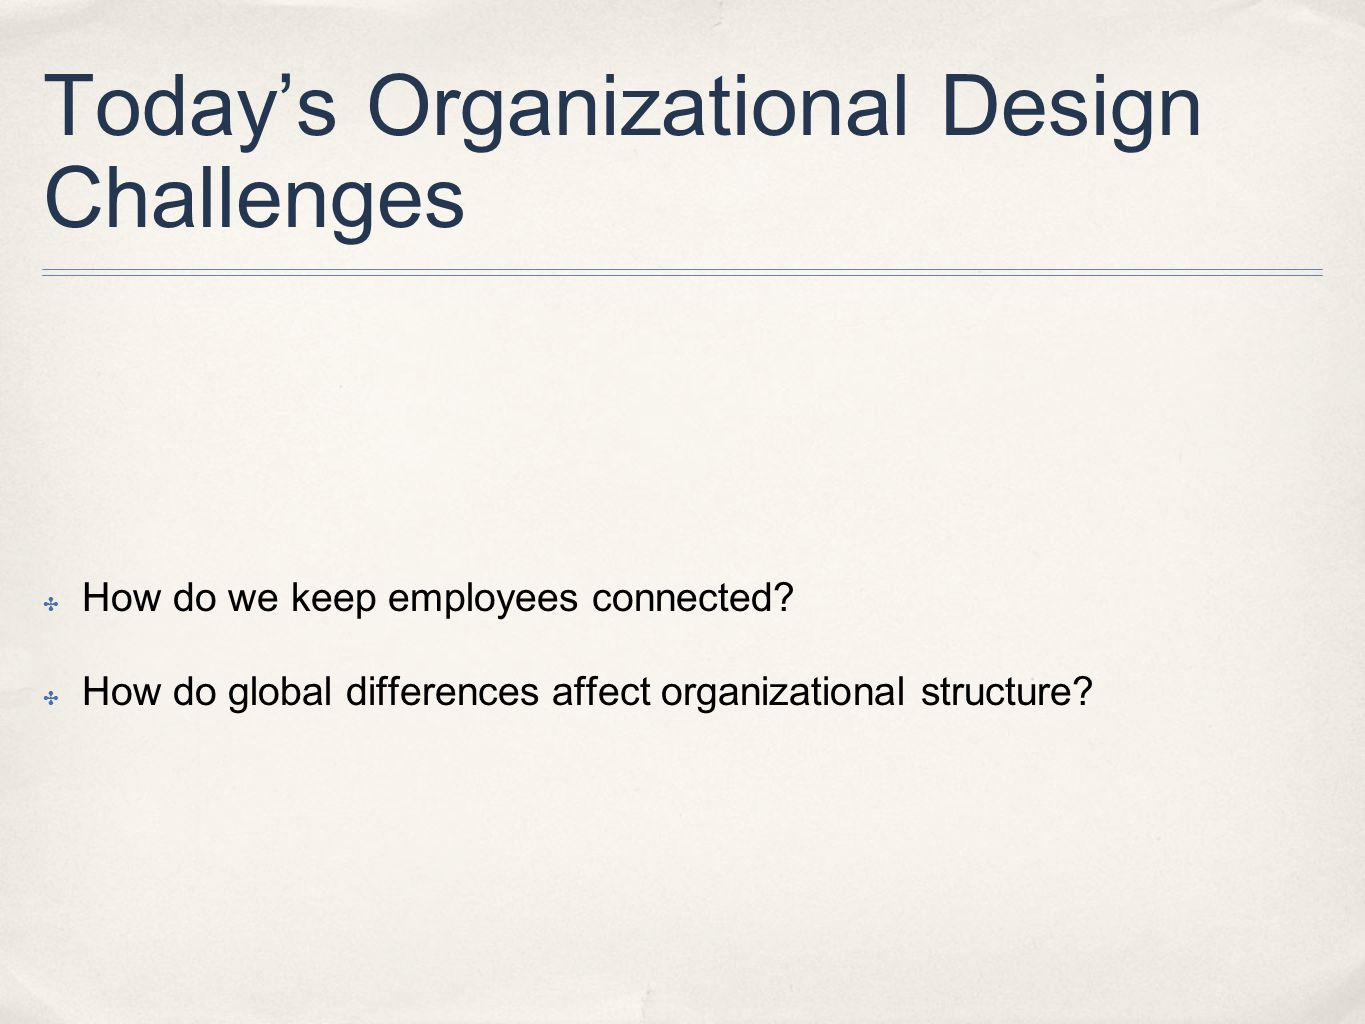 Today's Organizational Design Challenges